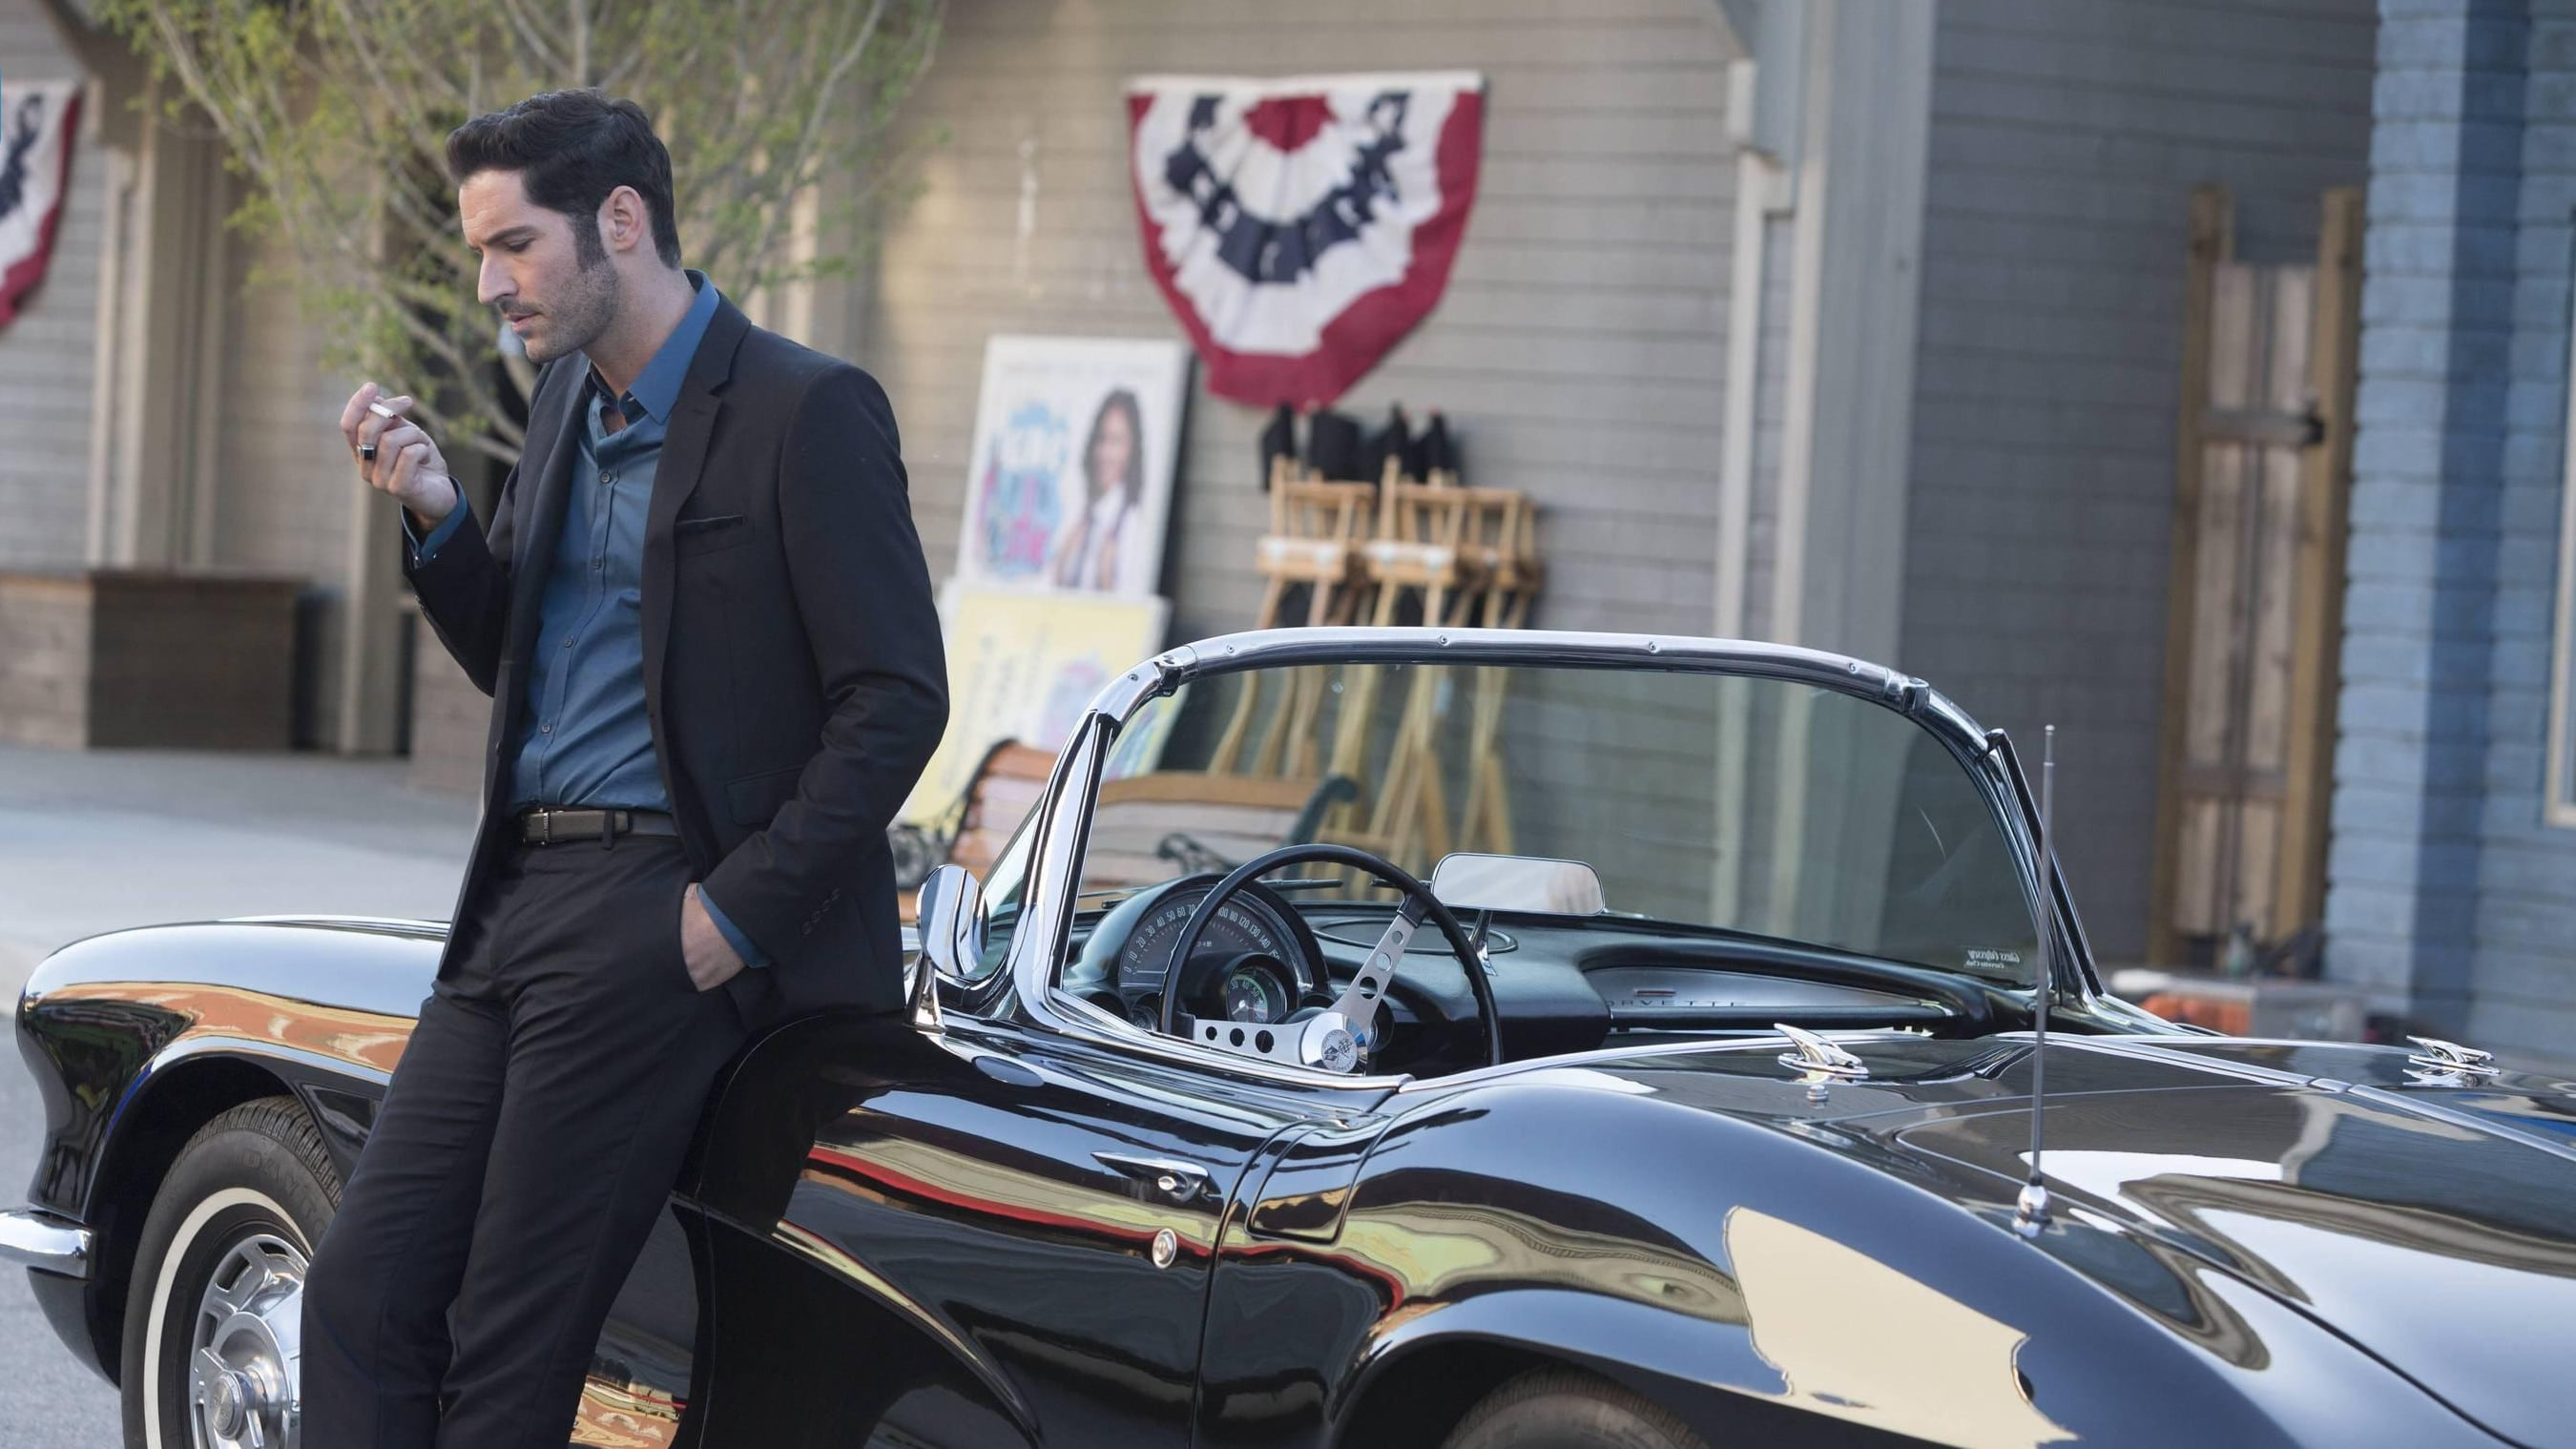 Lucifer - Season 2 Episode 1 : Everything's Coming Up Lucifer